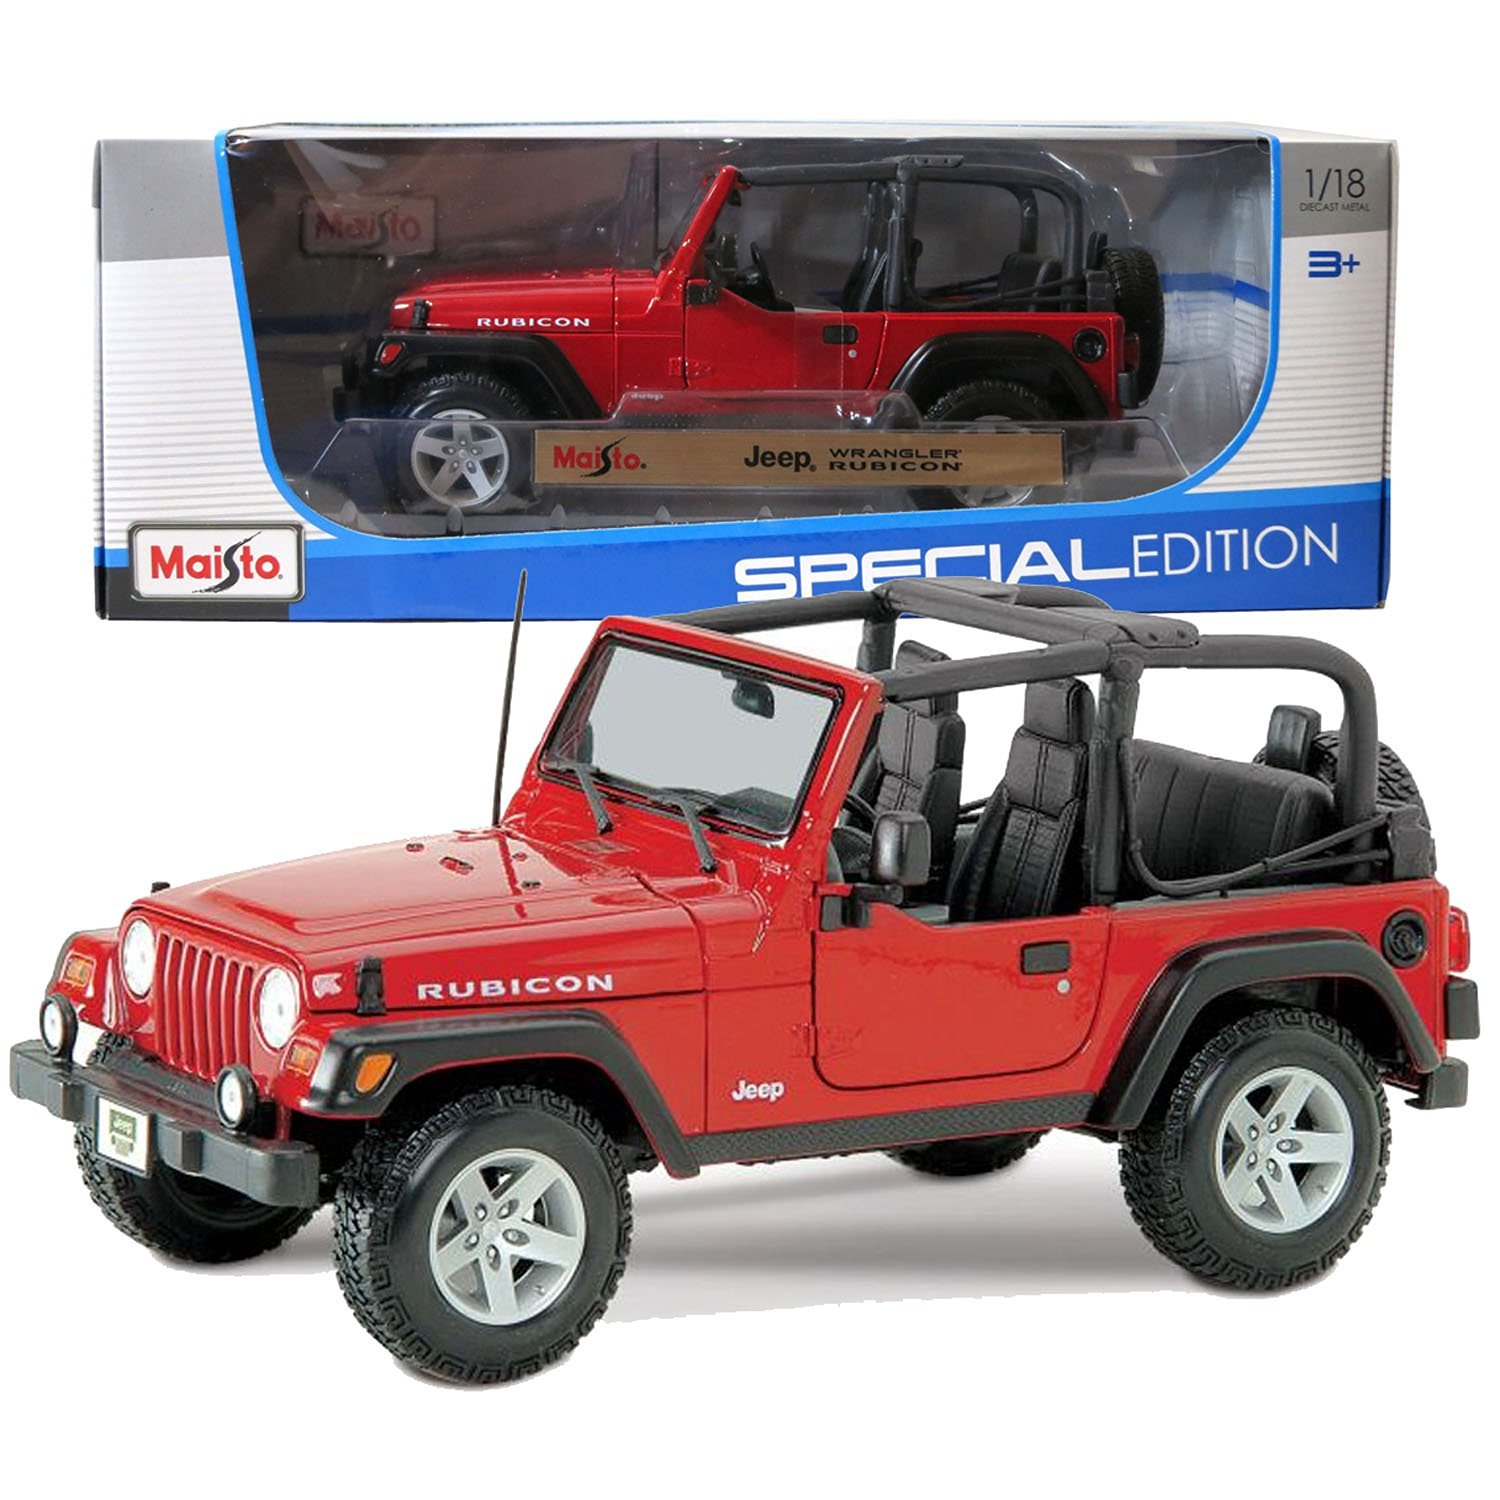 """Maisto Year 2014 Special Edition Series 1:18 Scale Die Cast Car Set - Red Color Sports Utility Vehicle JEEP WRANGLER RUBICON (SUV Dimension: 8"""" x 3-1/2"""" x 3-1/2"""")"""